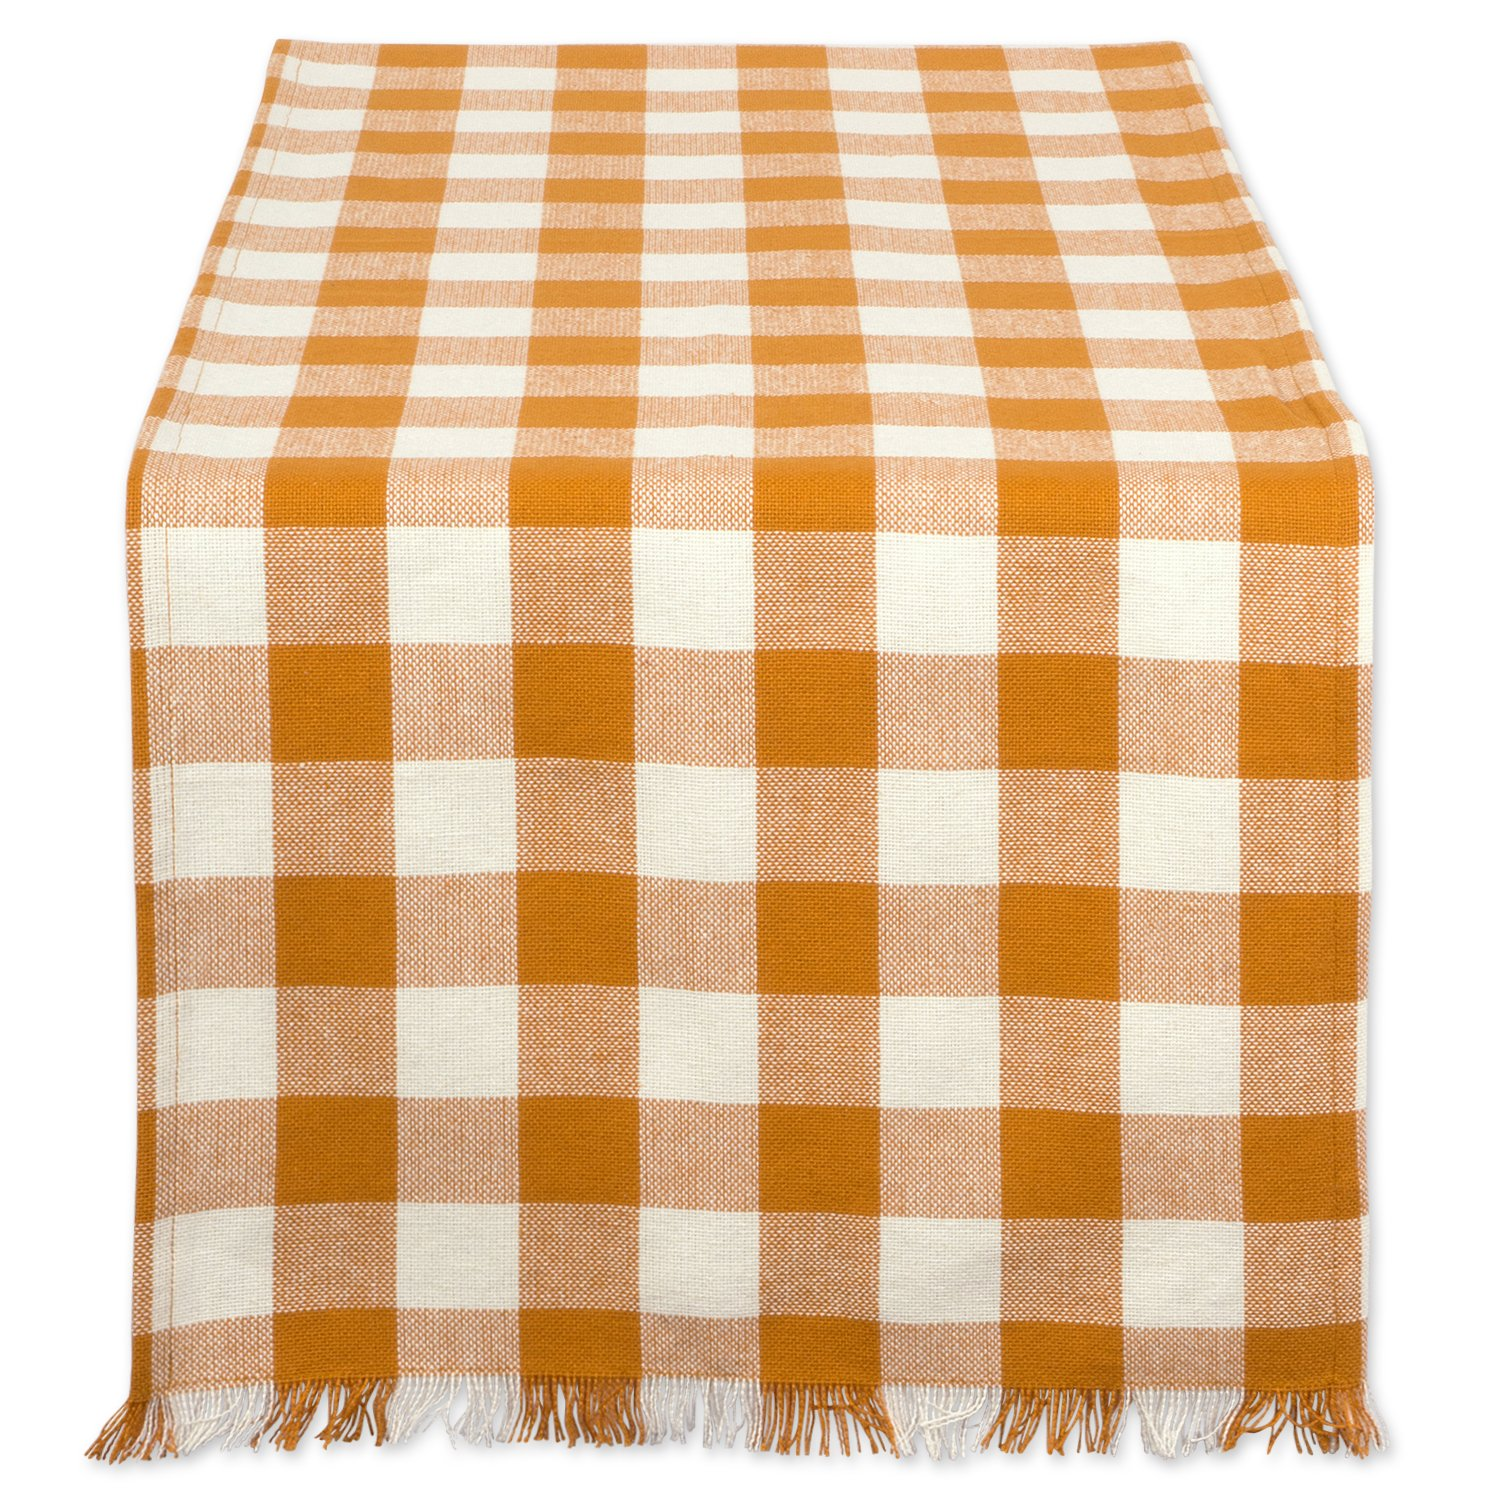 DII CAMZ37588 HEAVYWEIGHT FRINGED TR CHECK 14X108 PUMPKIN SPICE, Checkered by DII